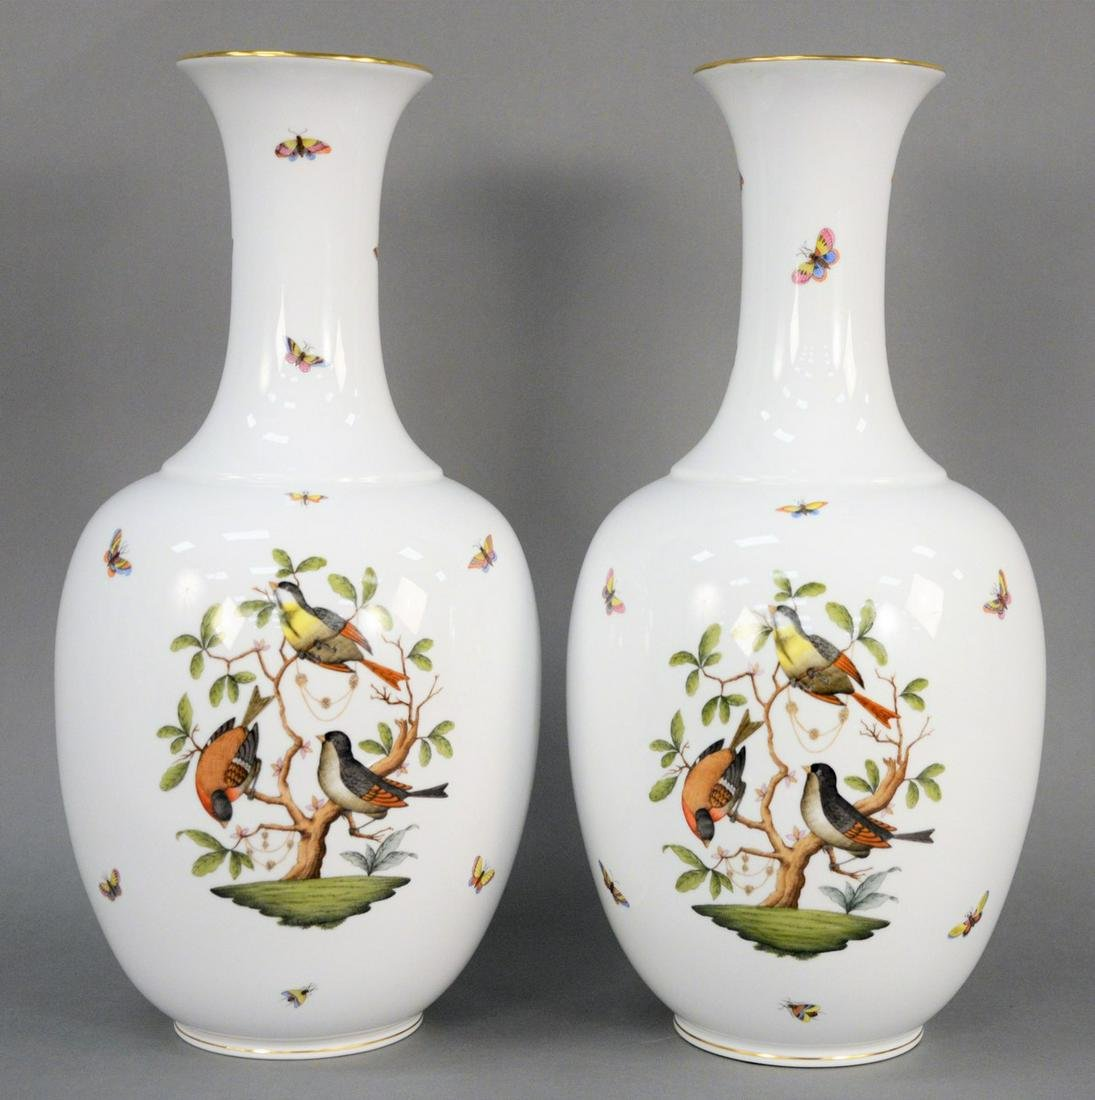 Pair of Large Herend Rothschild Bird Vases, urn form